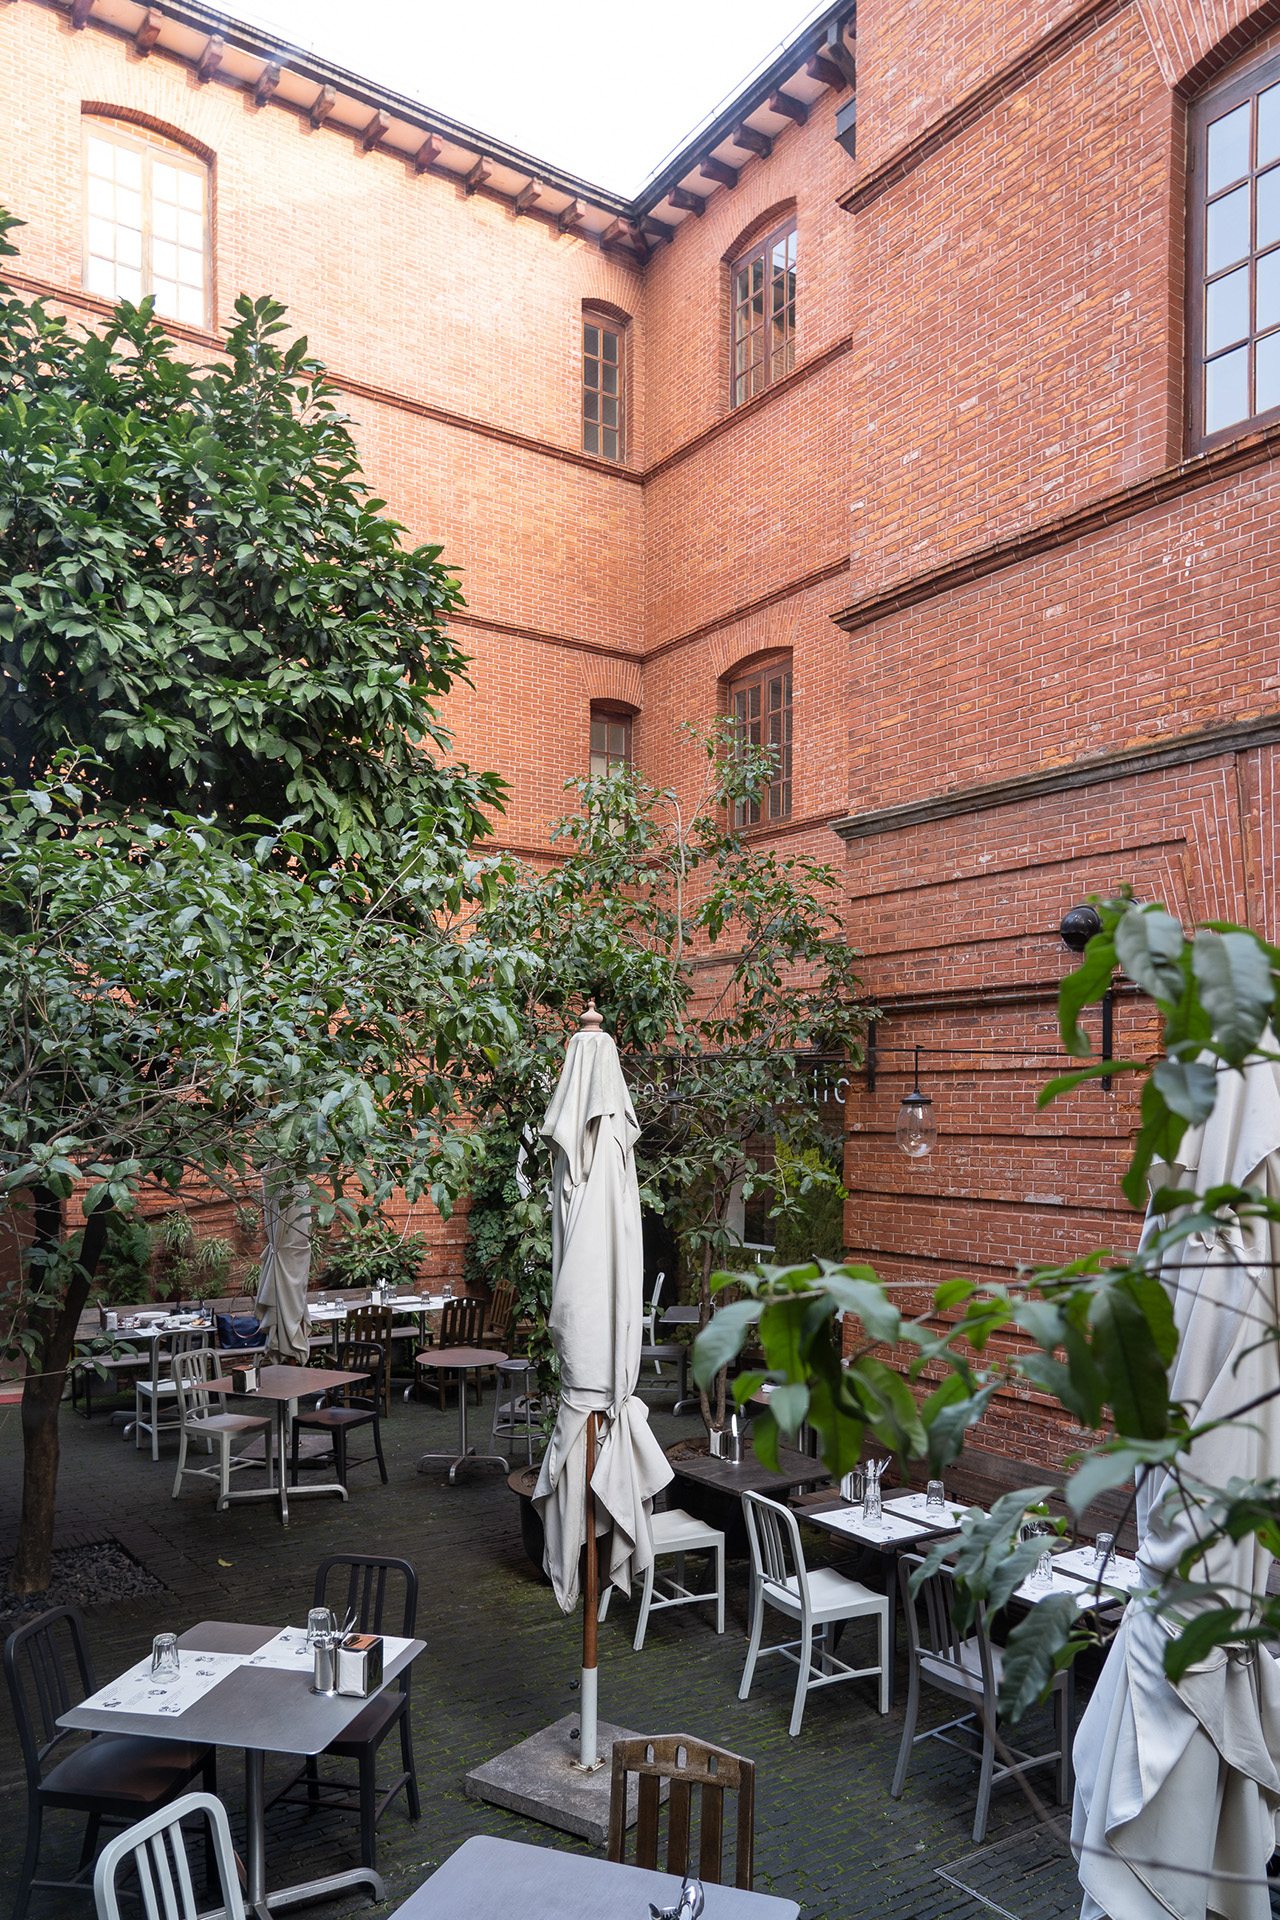 The spacious outdoor dining courtyard.